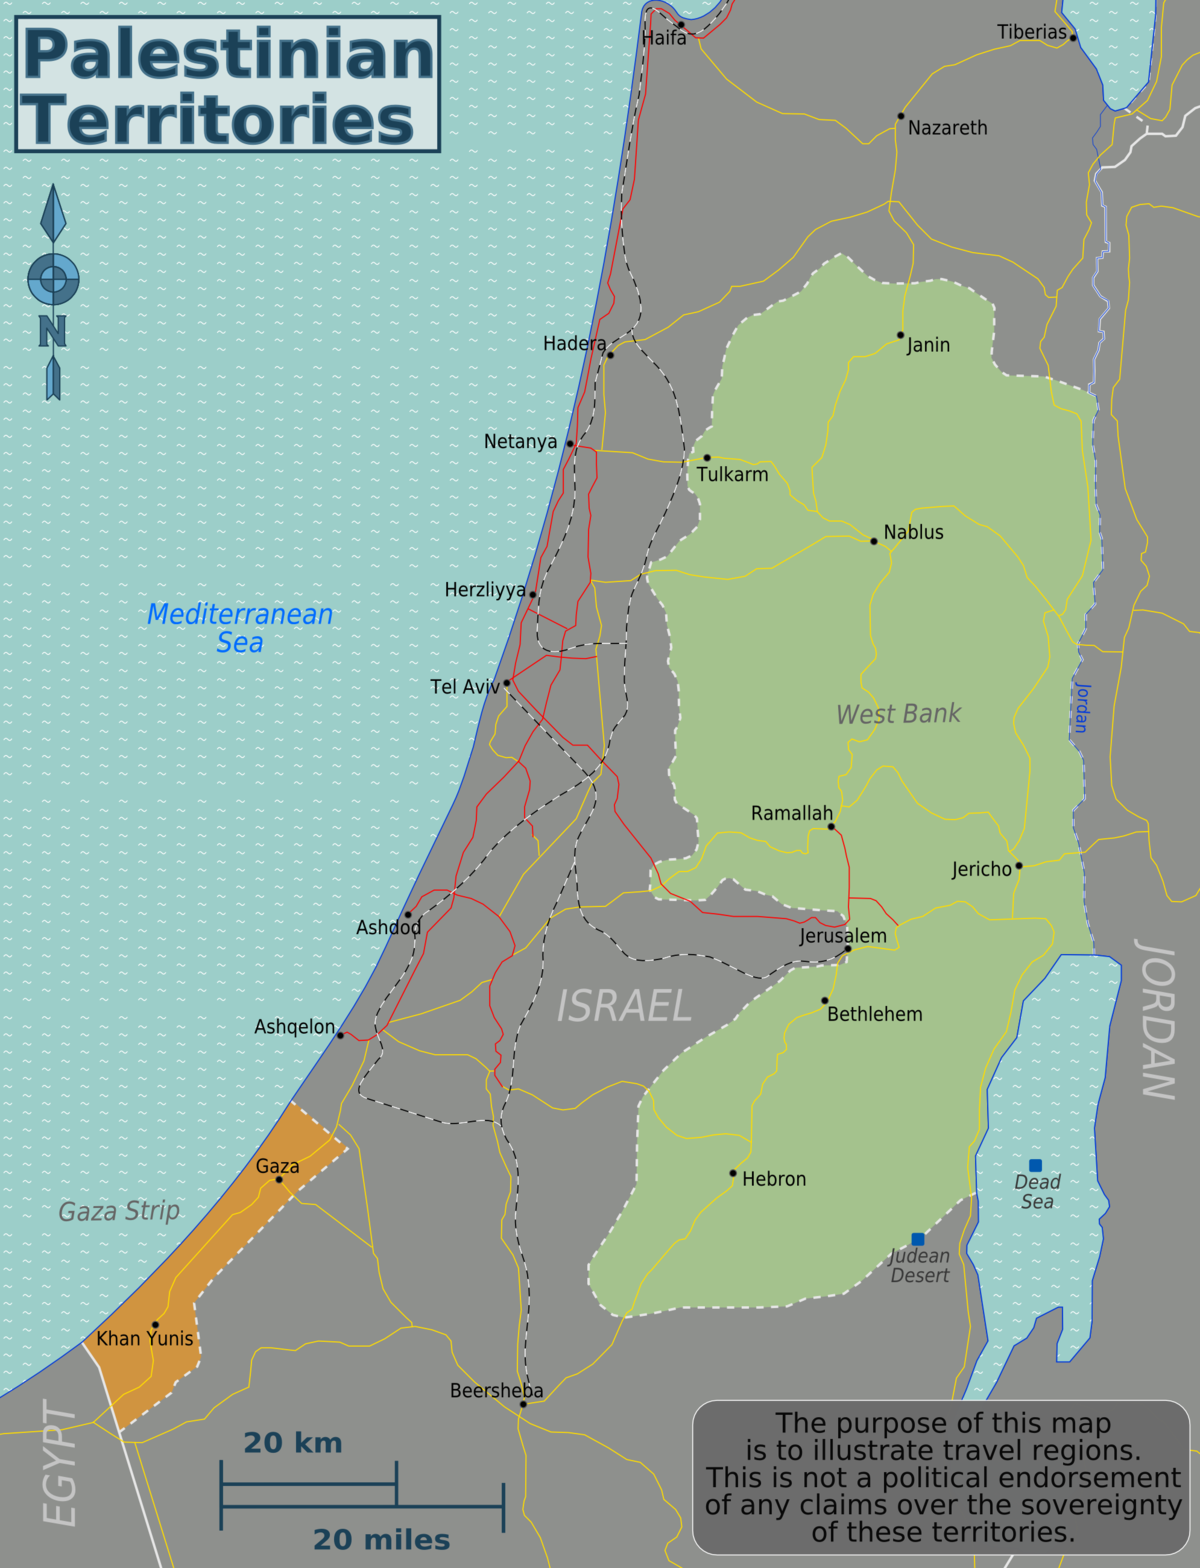 Palestinian territories Travel guide at Wikivoyage